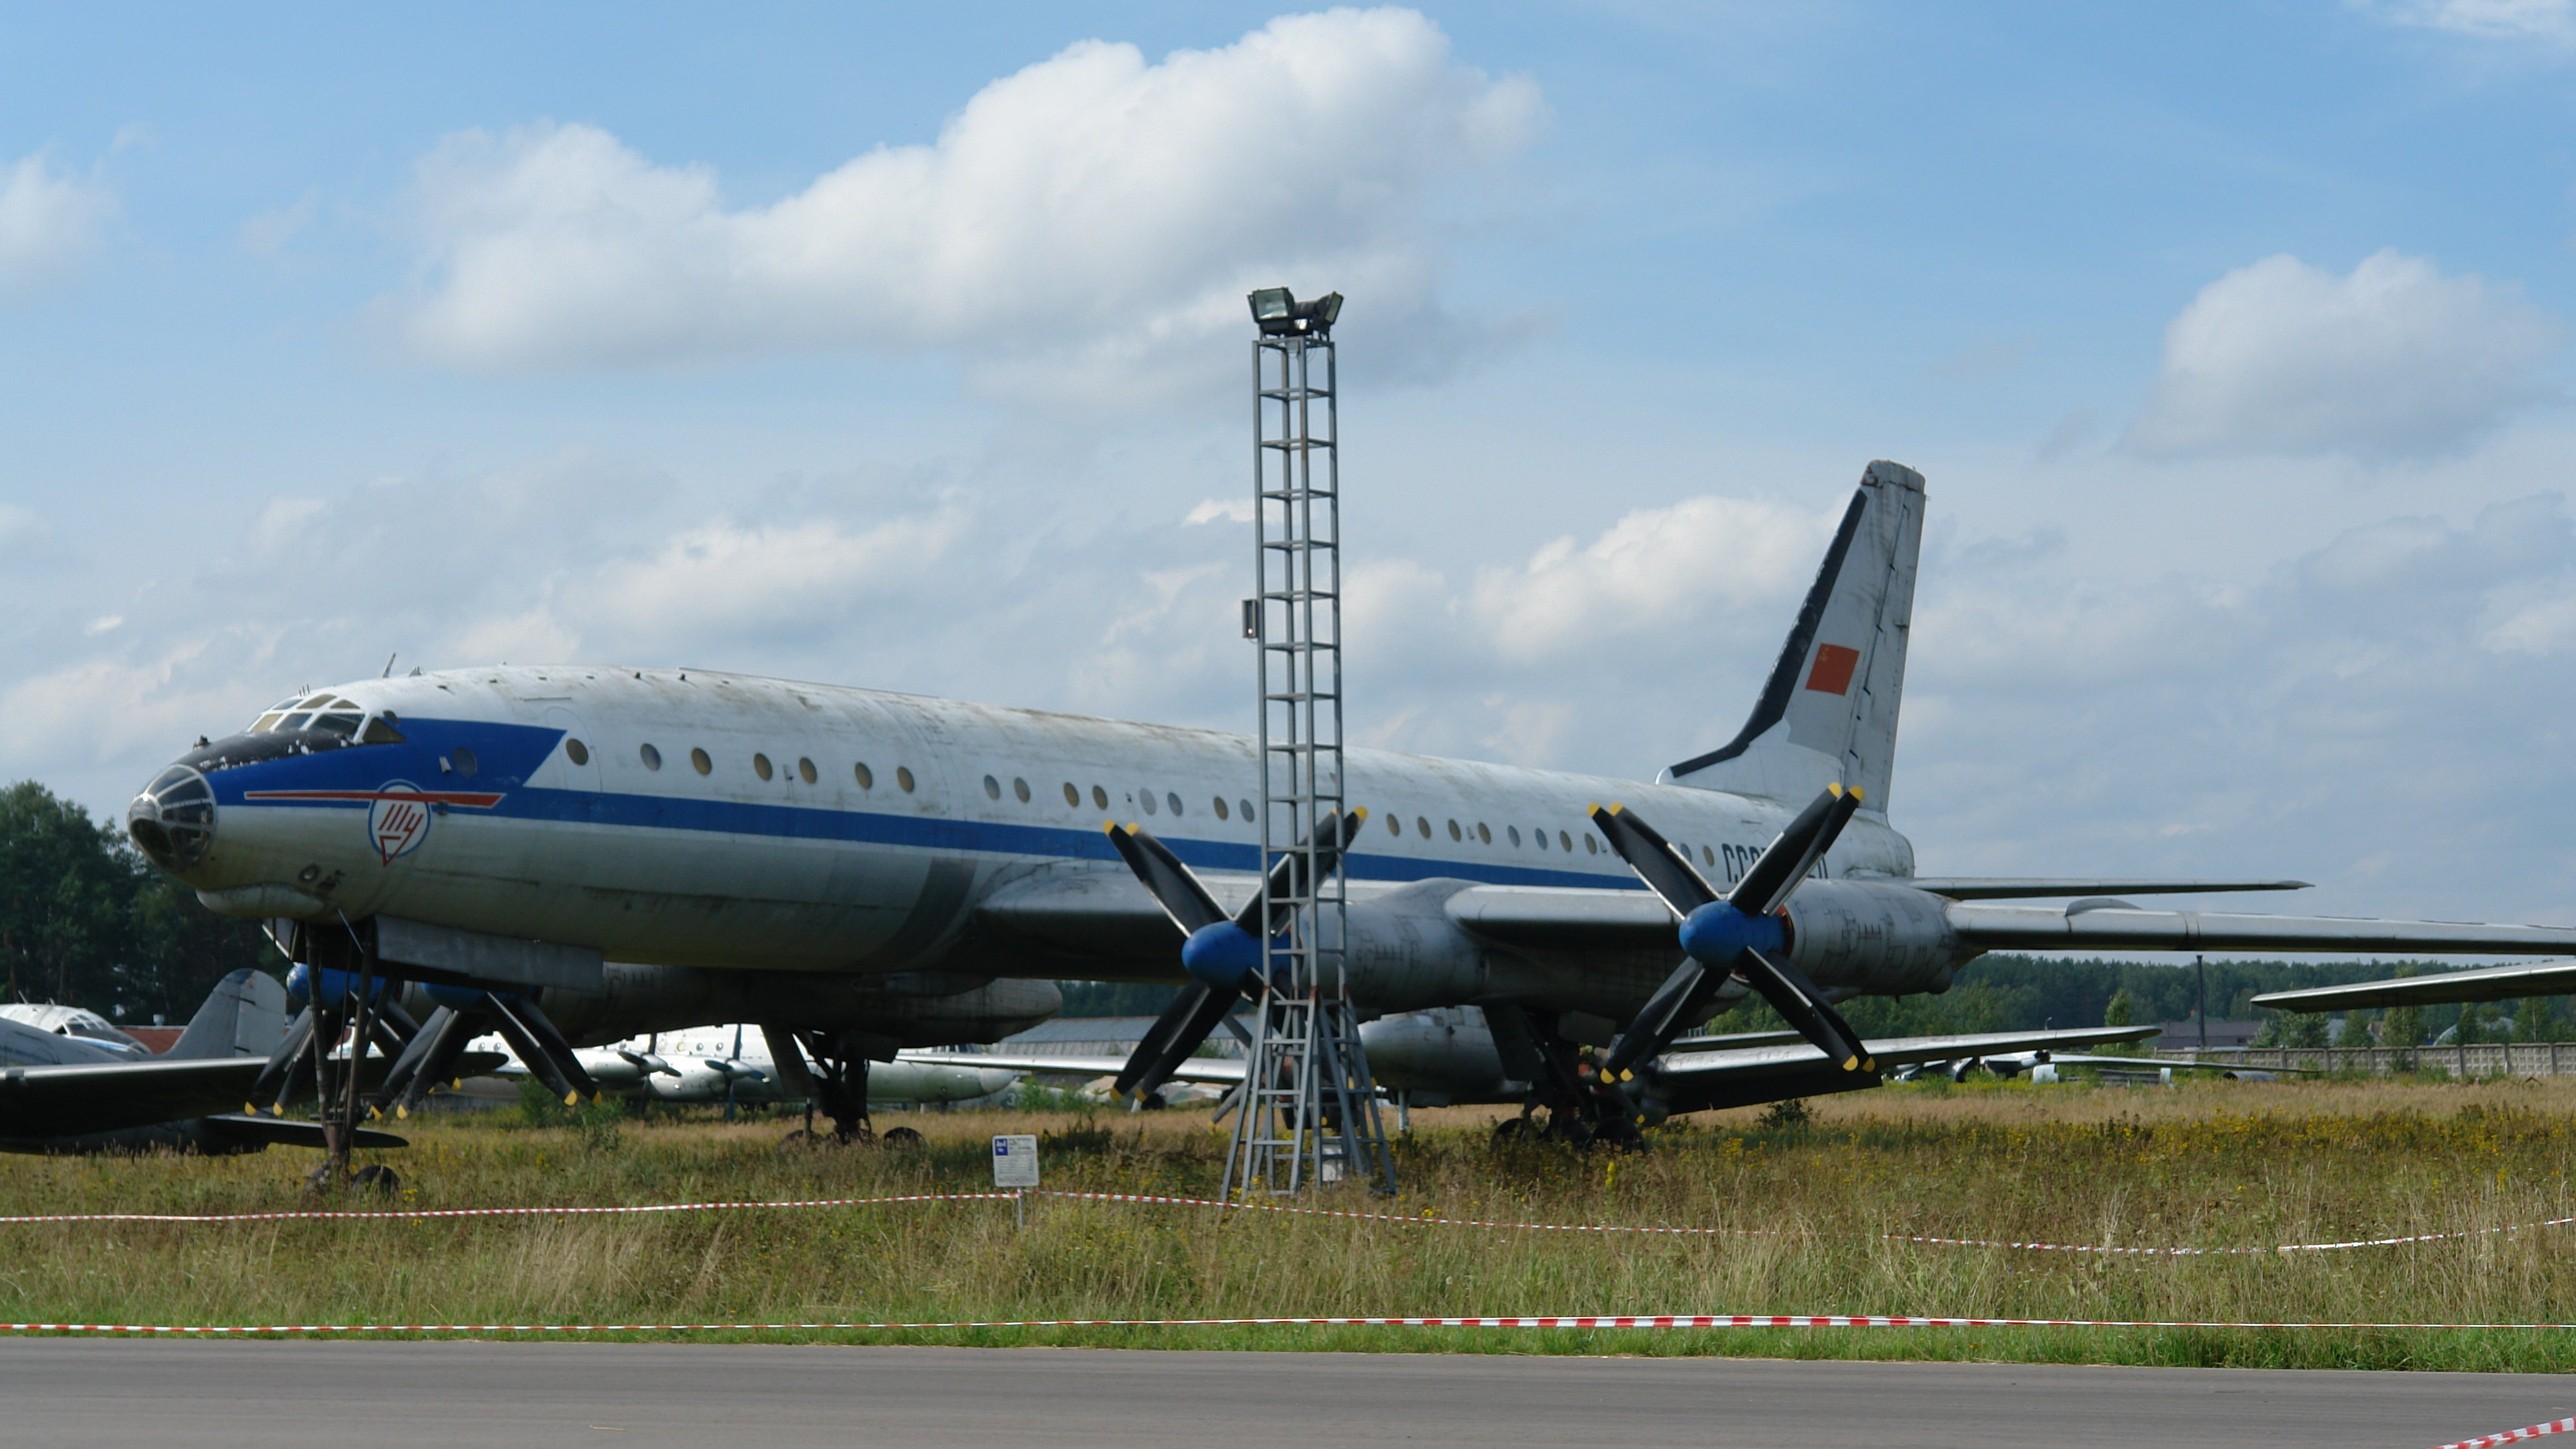 How The Soviet Union Once Built The Noisiest Airliner In The World Out Of A Nuclear Bomber